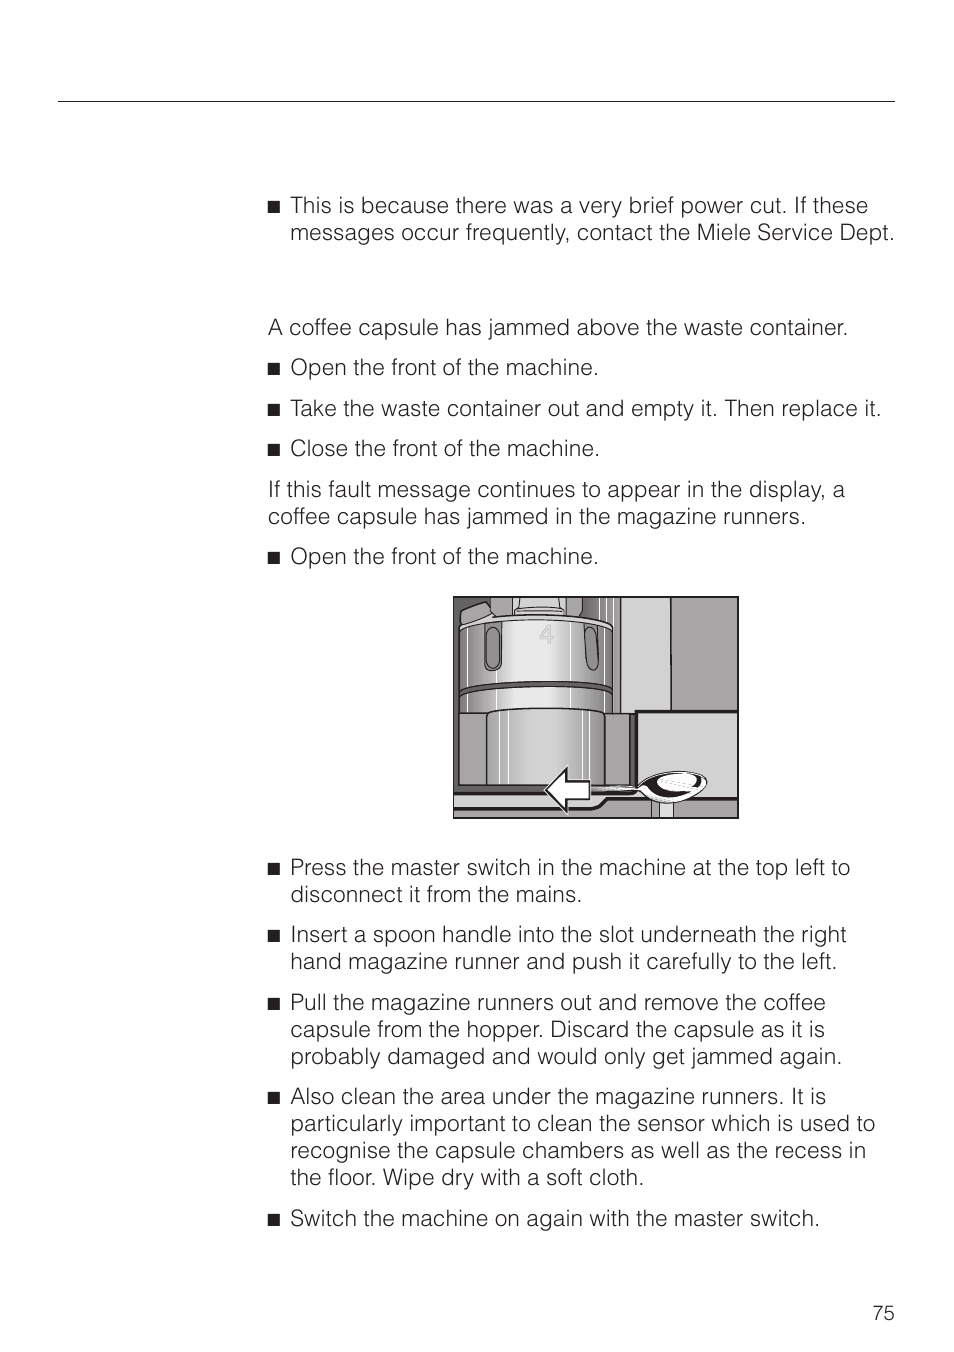 Miele Service Contact Problem Solving Guide | Miele Cva 2660 User Manual | Page